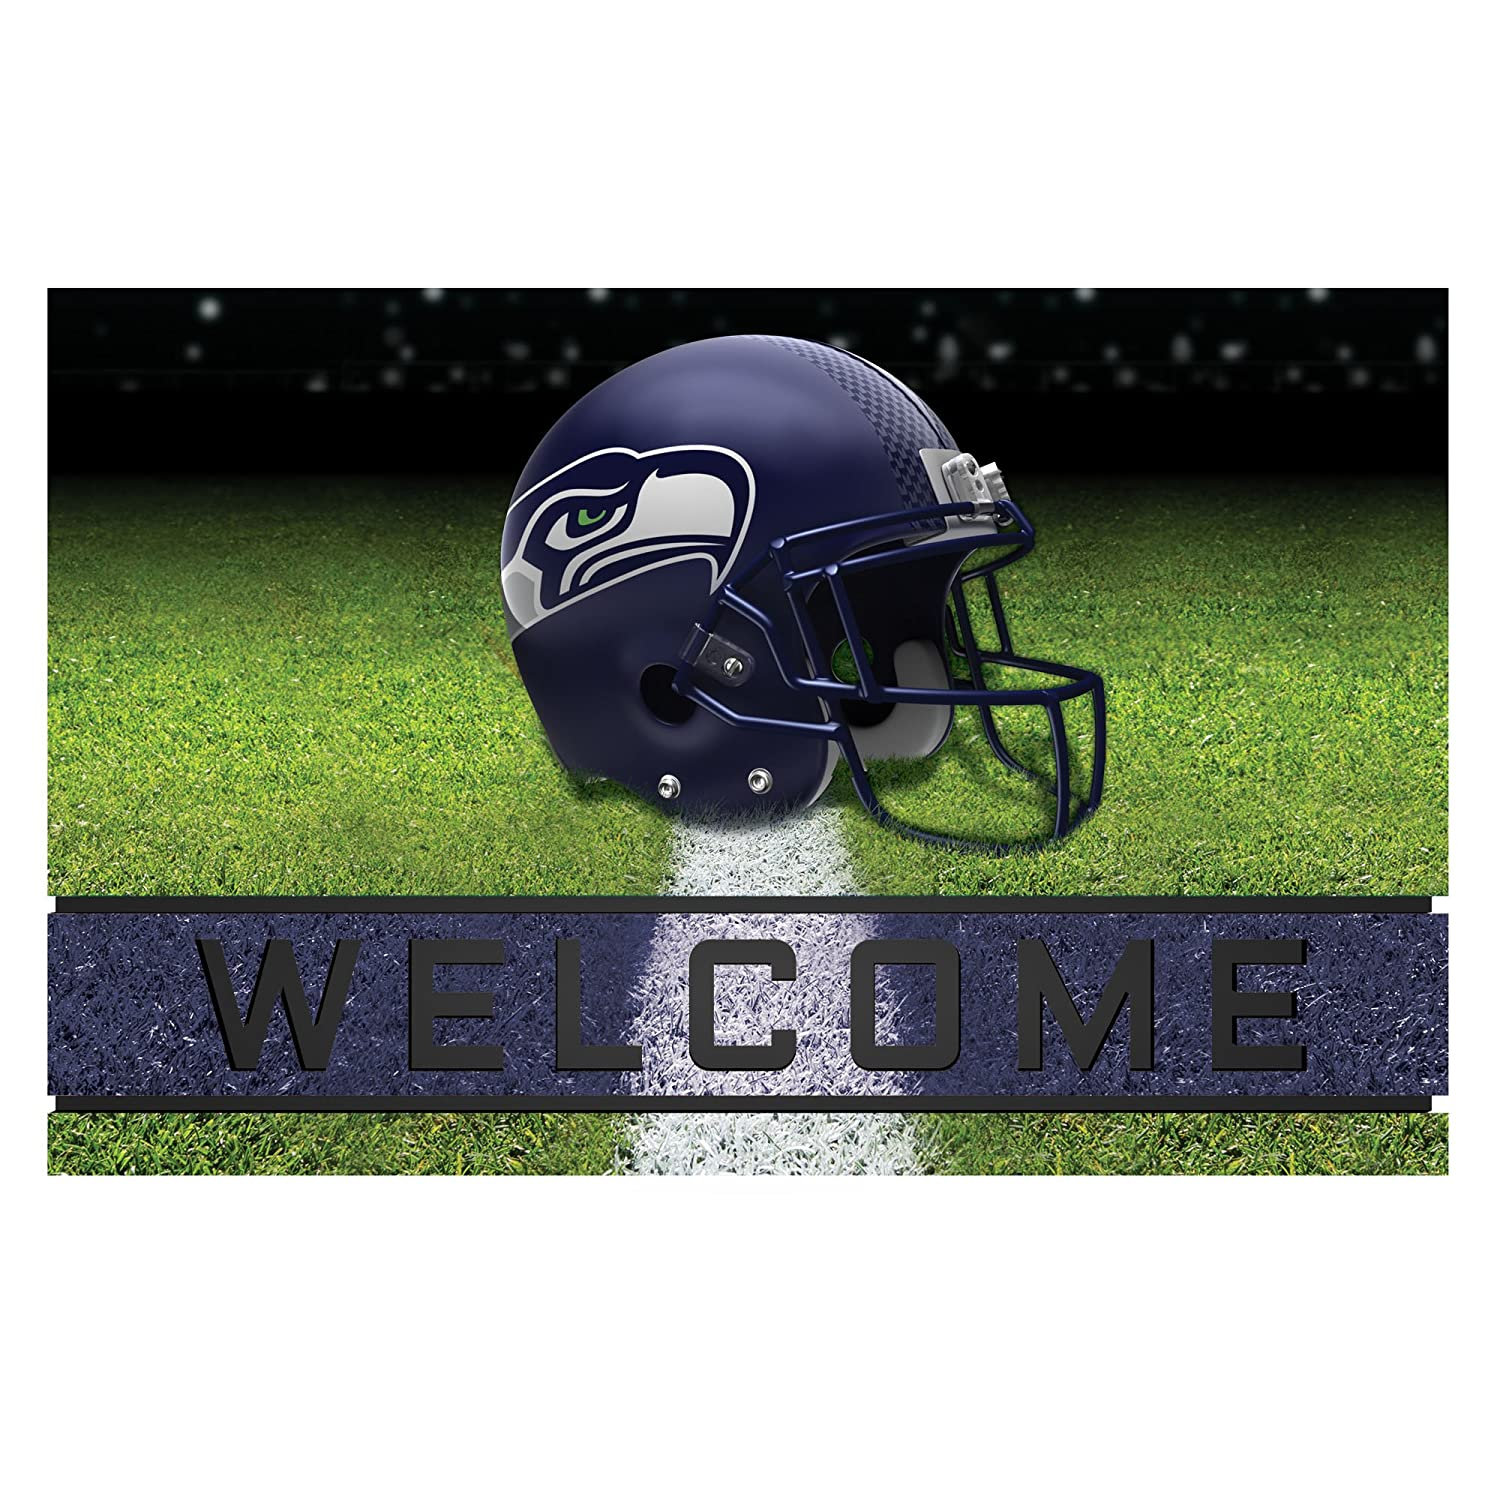 FANMATS 21058 Steering Wheel Cover NFL (Seattle Seahawks)